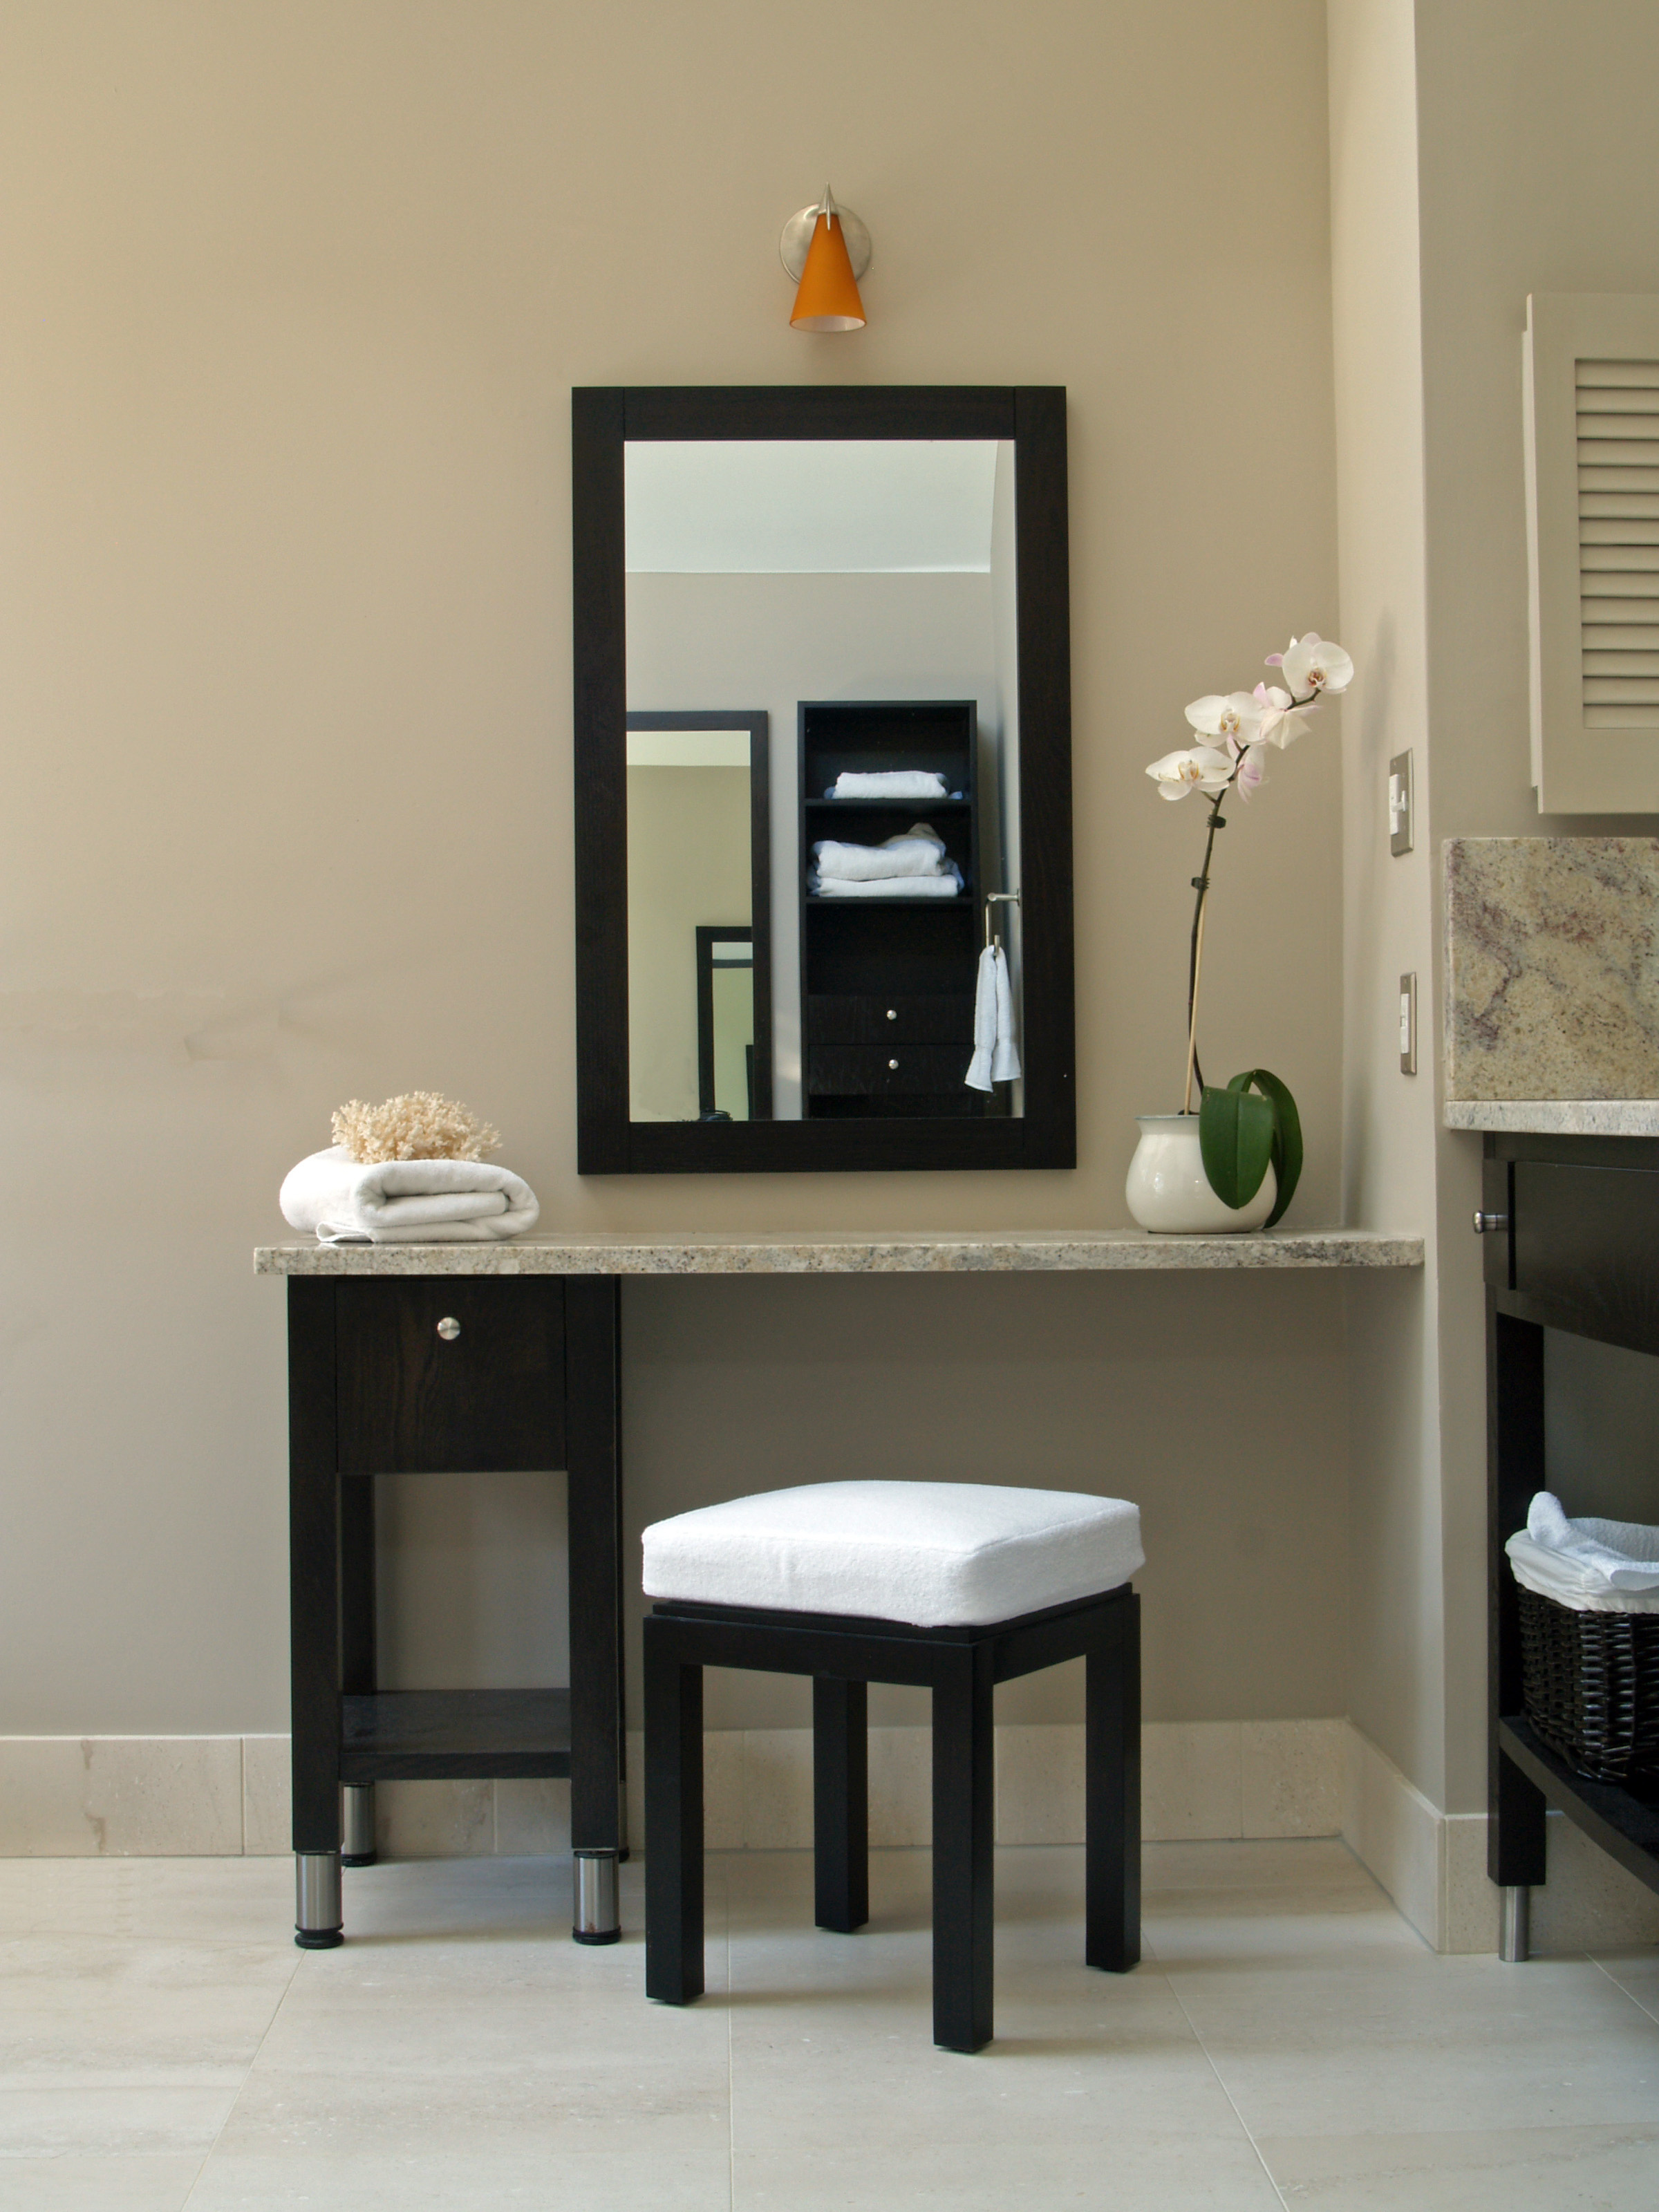 Hotel Style Bathroom Vanity Open Shelving Main Line